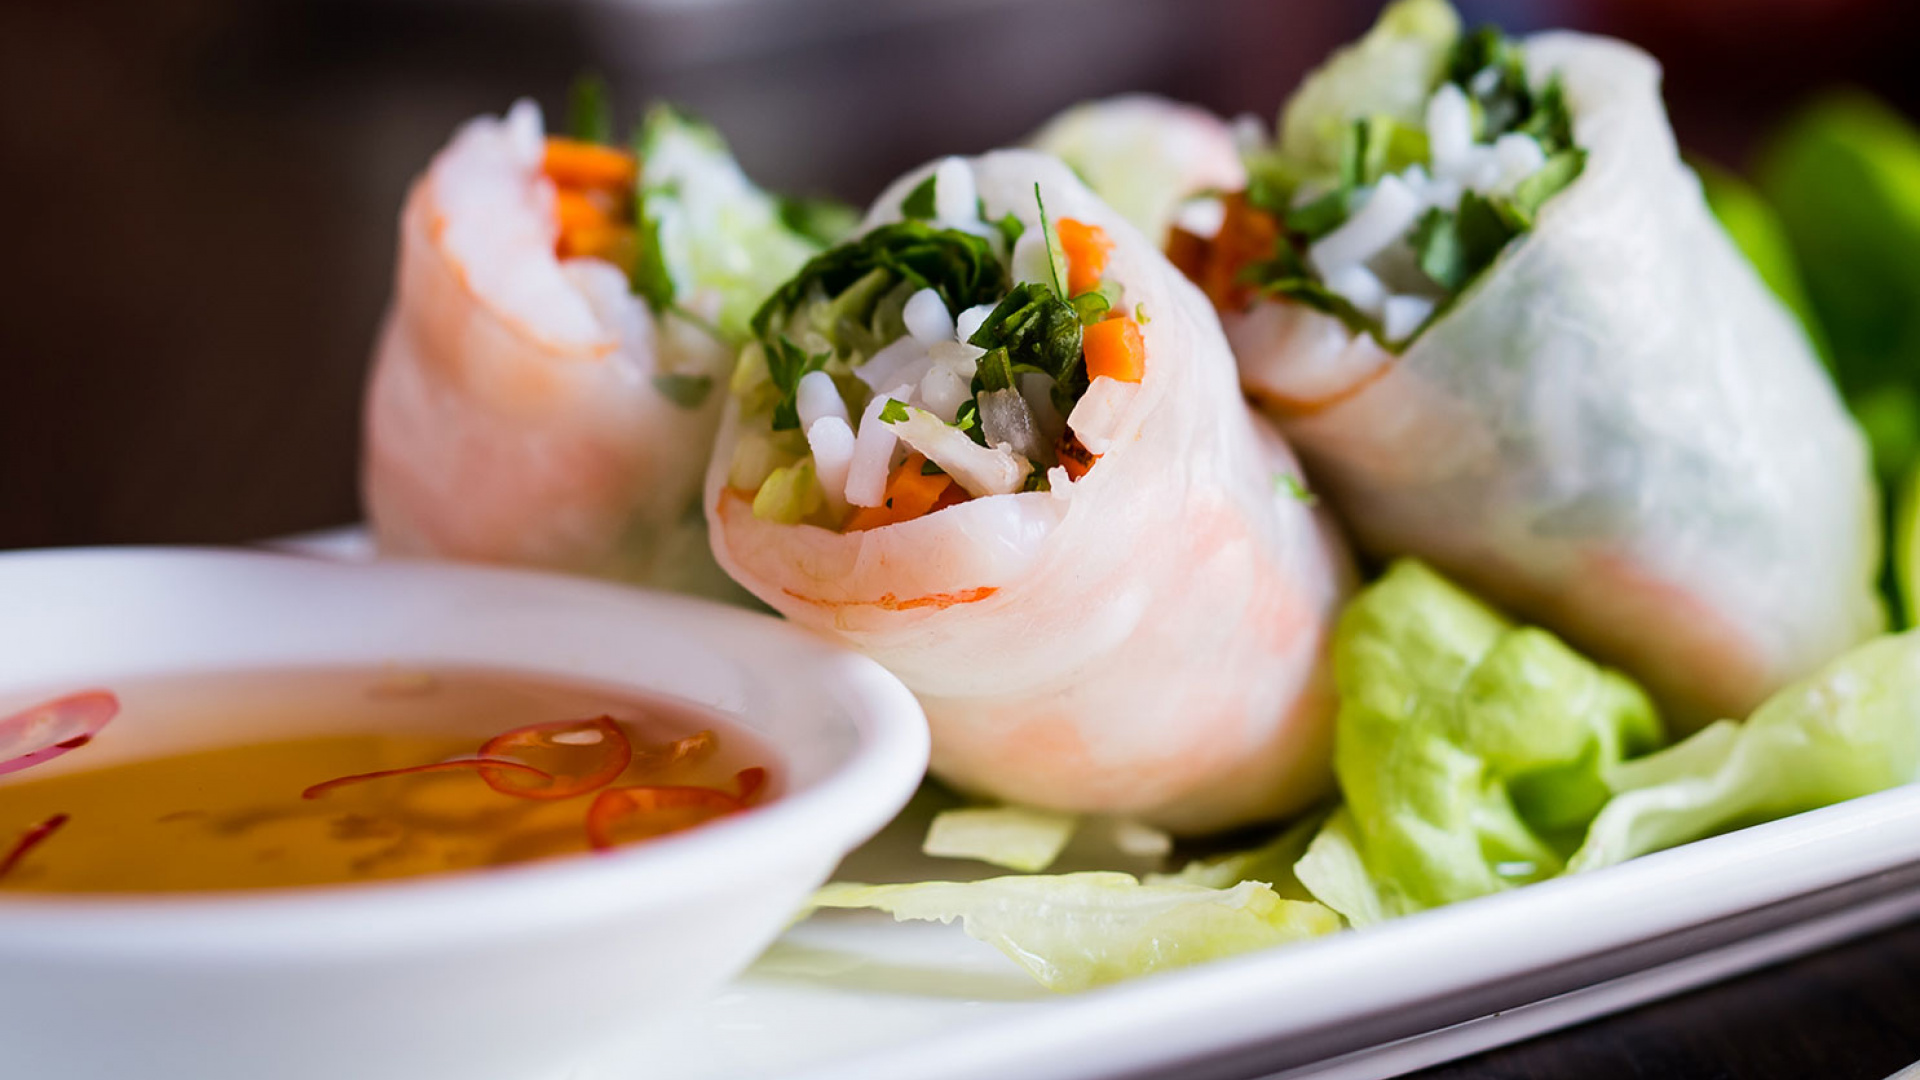 Pho's recipe for summer rolls